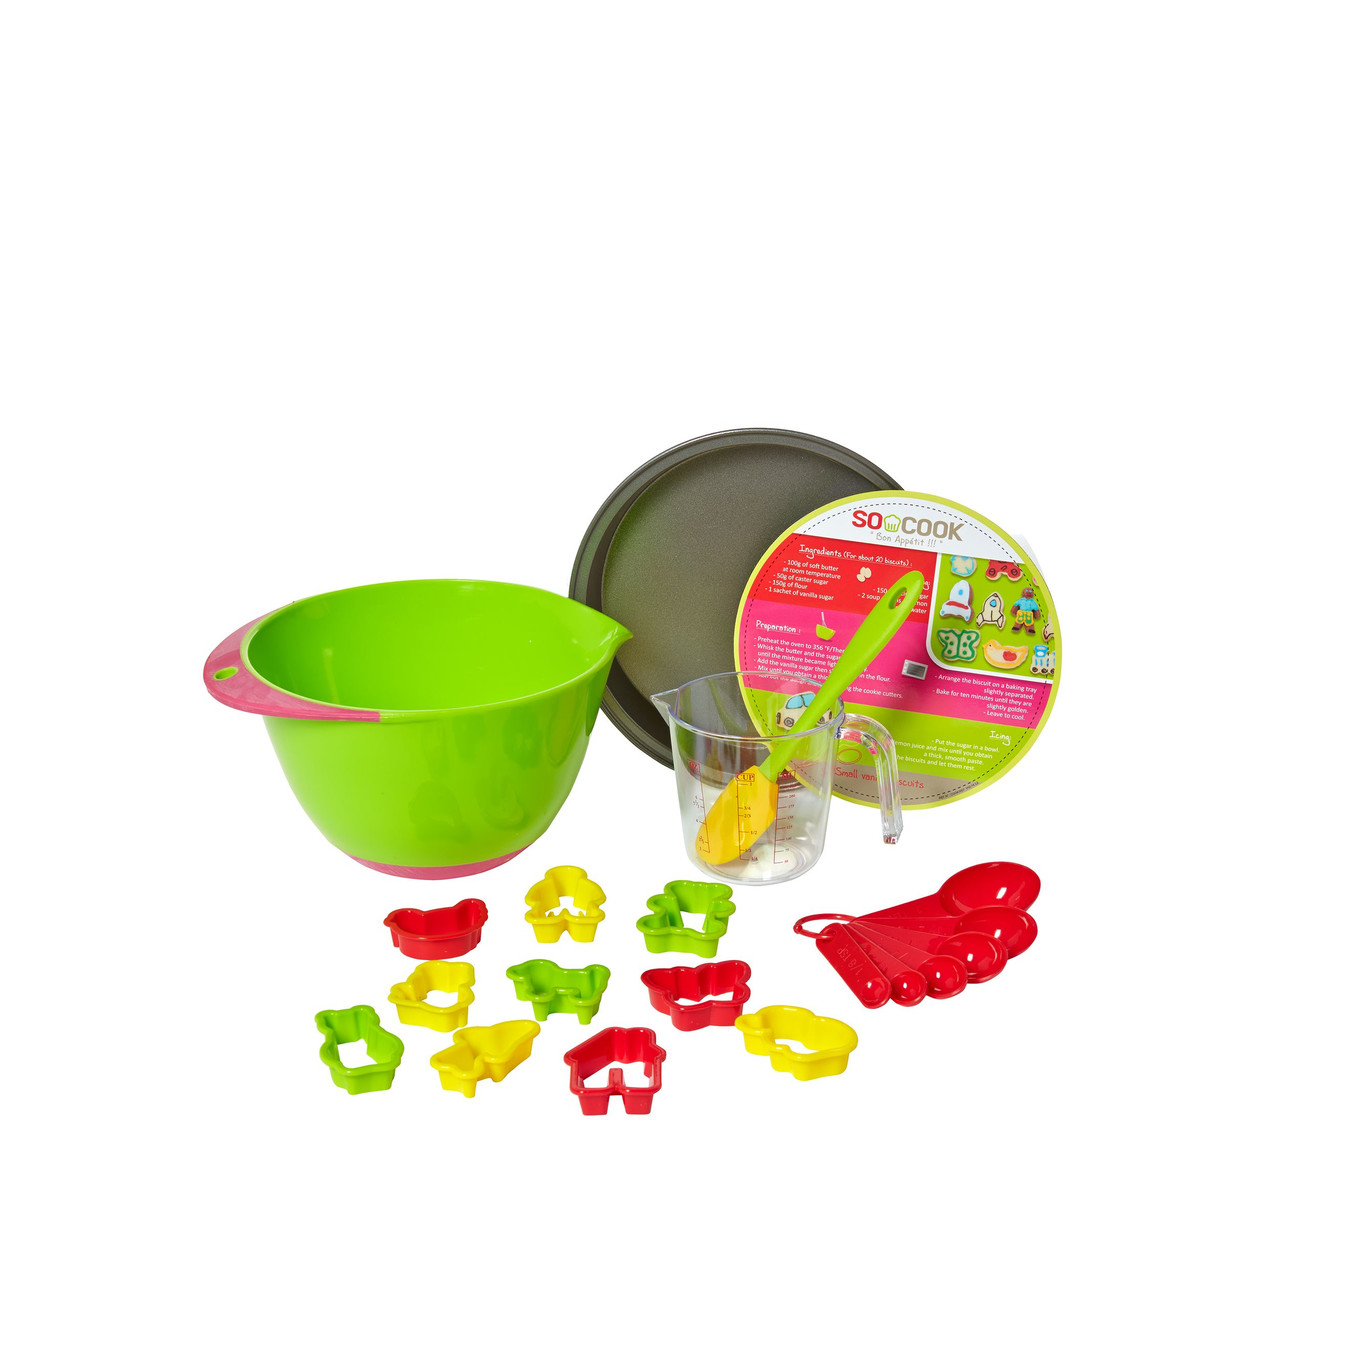 So Cook At Hamleys 20 Piece Cooking Set So Cook At Hamleys Near Me